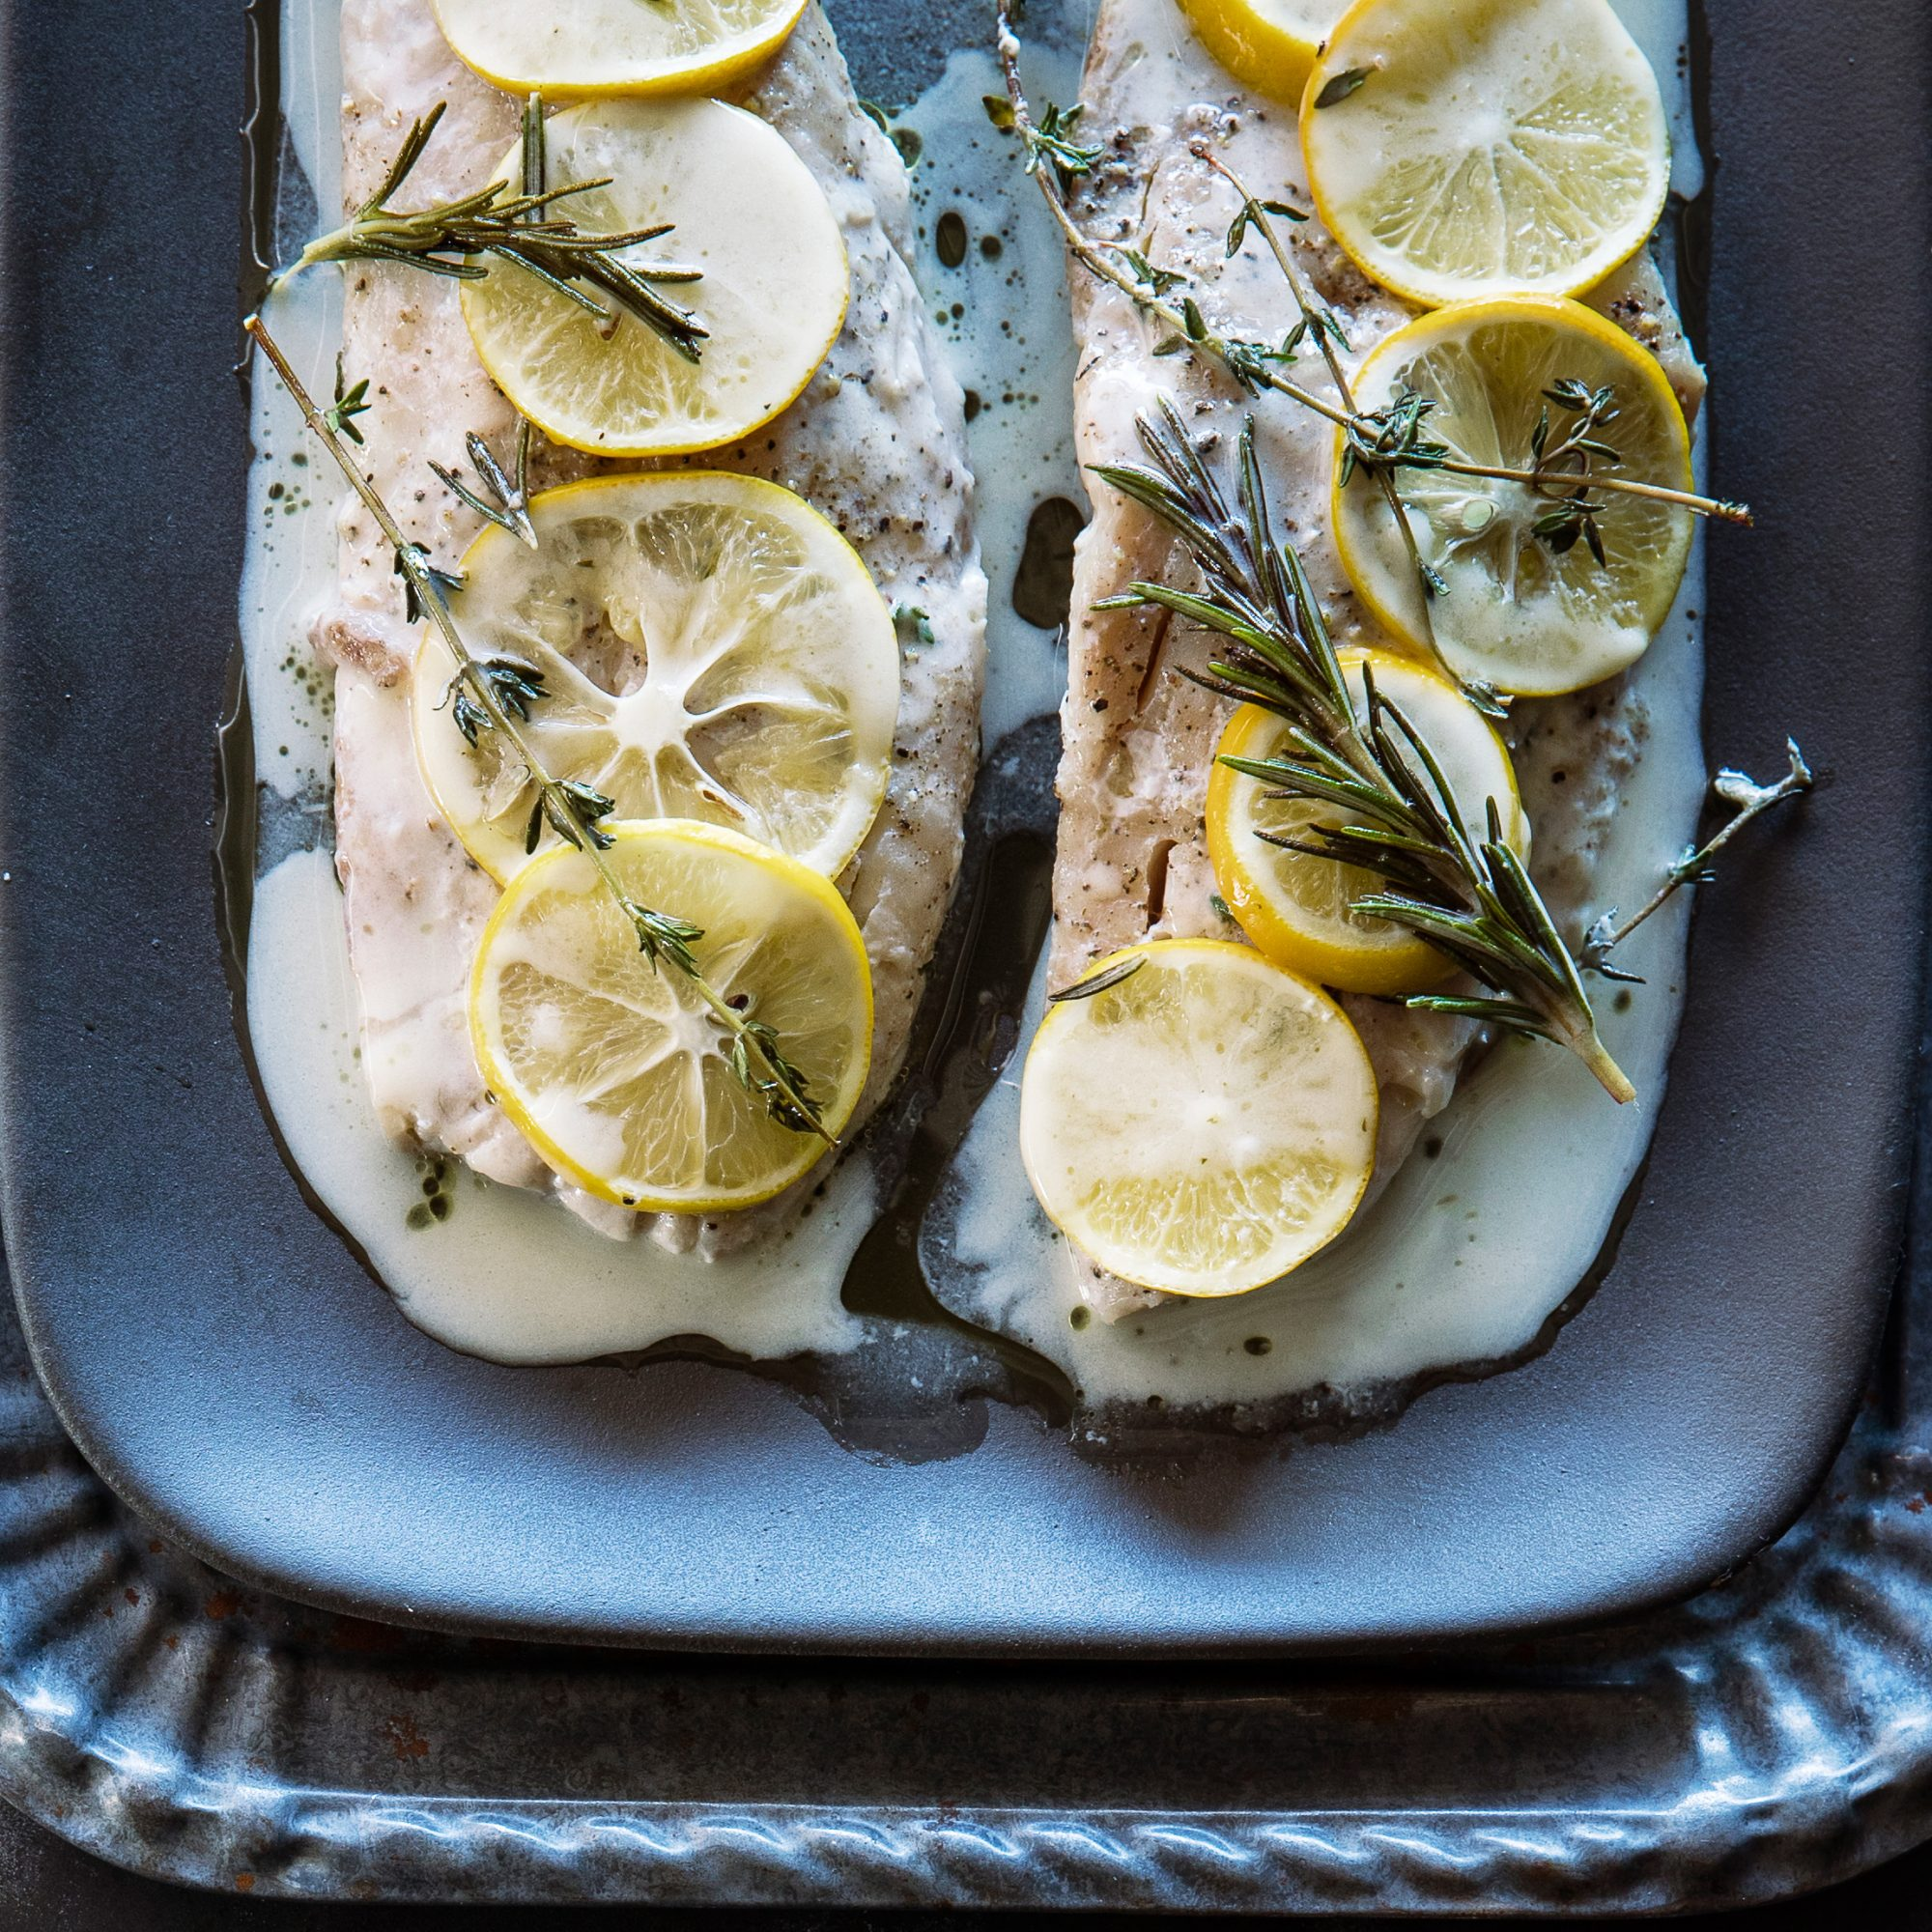 Steamed Rockfish with Herbed Beurre Blanc